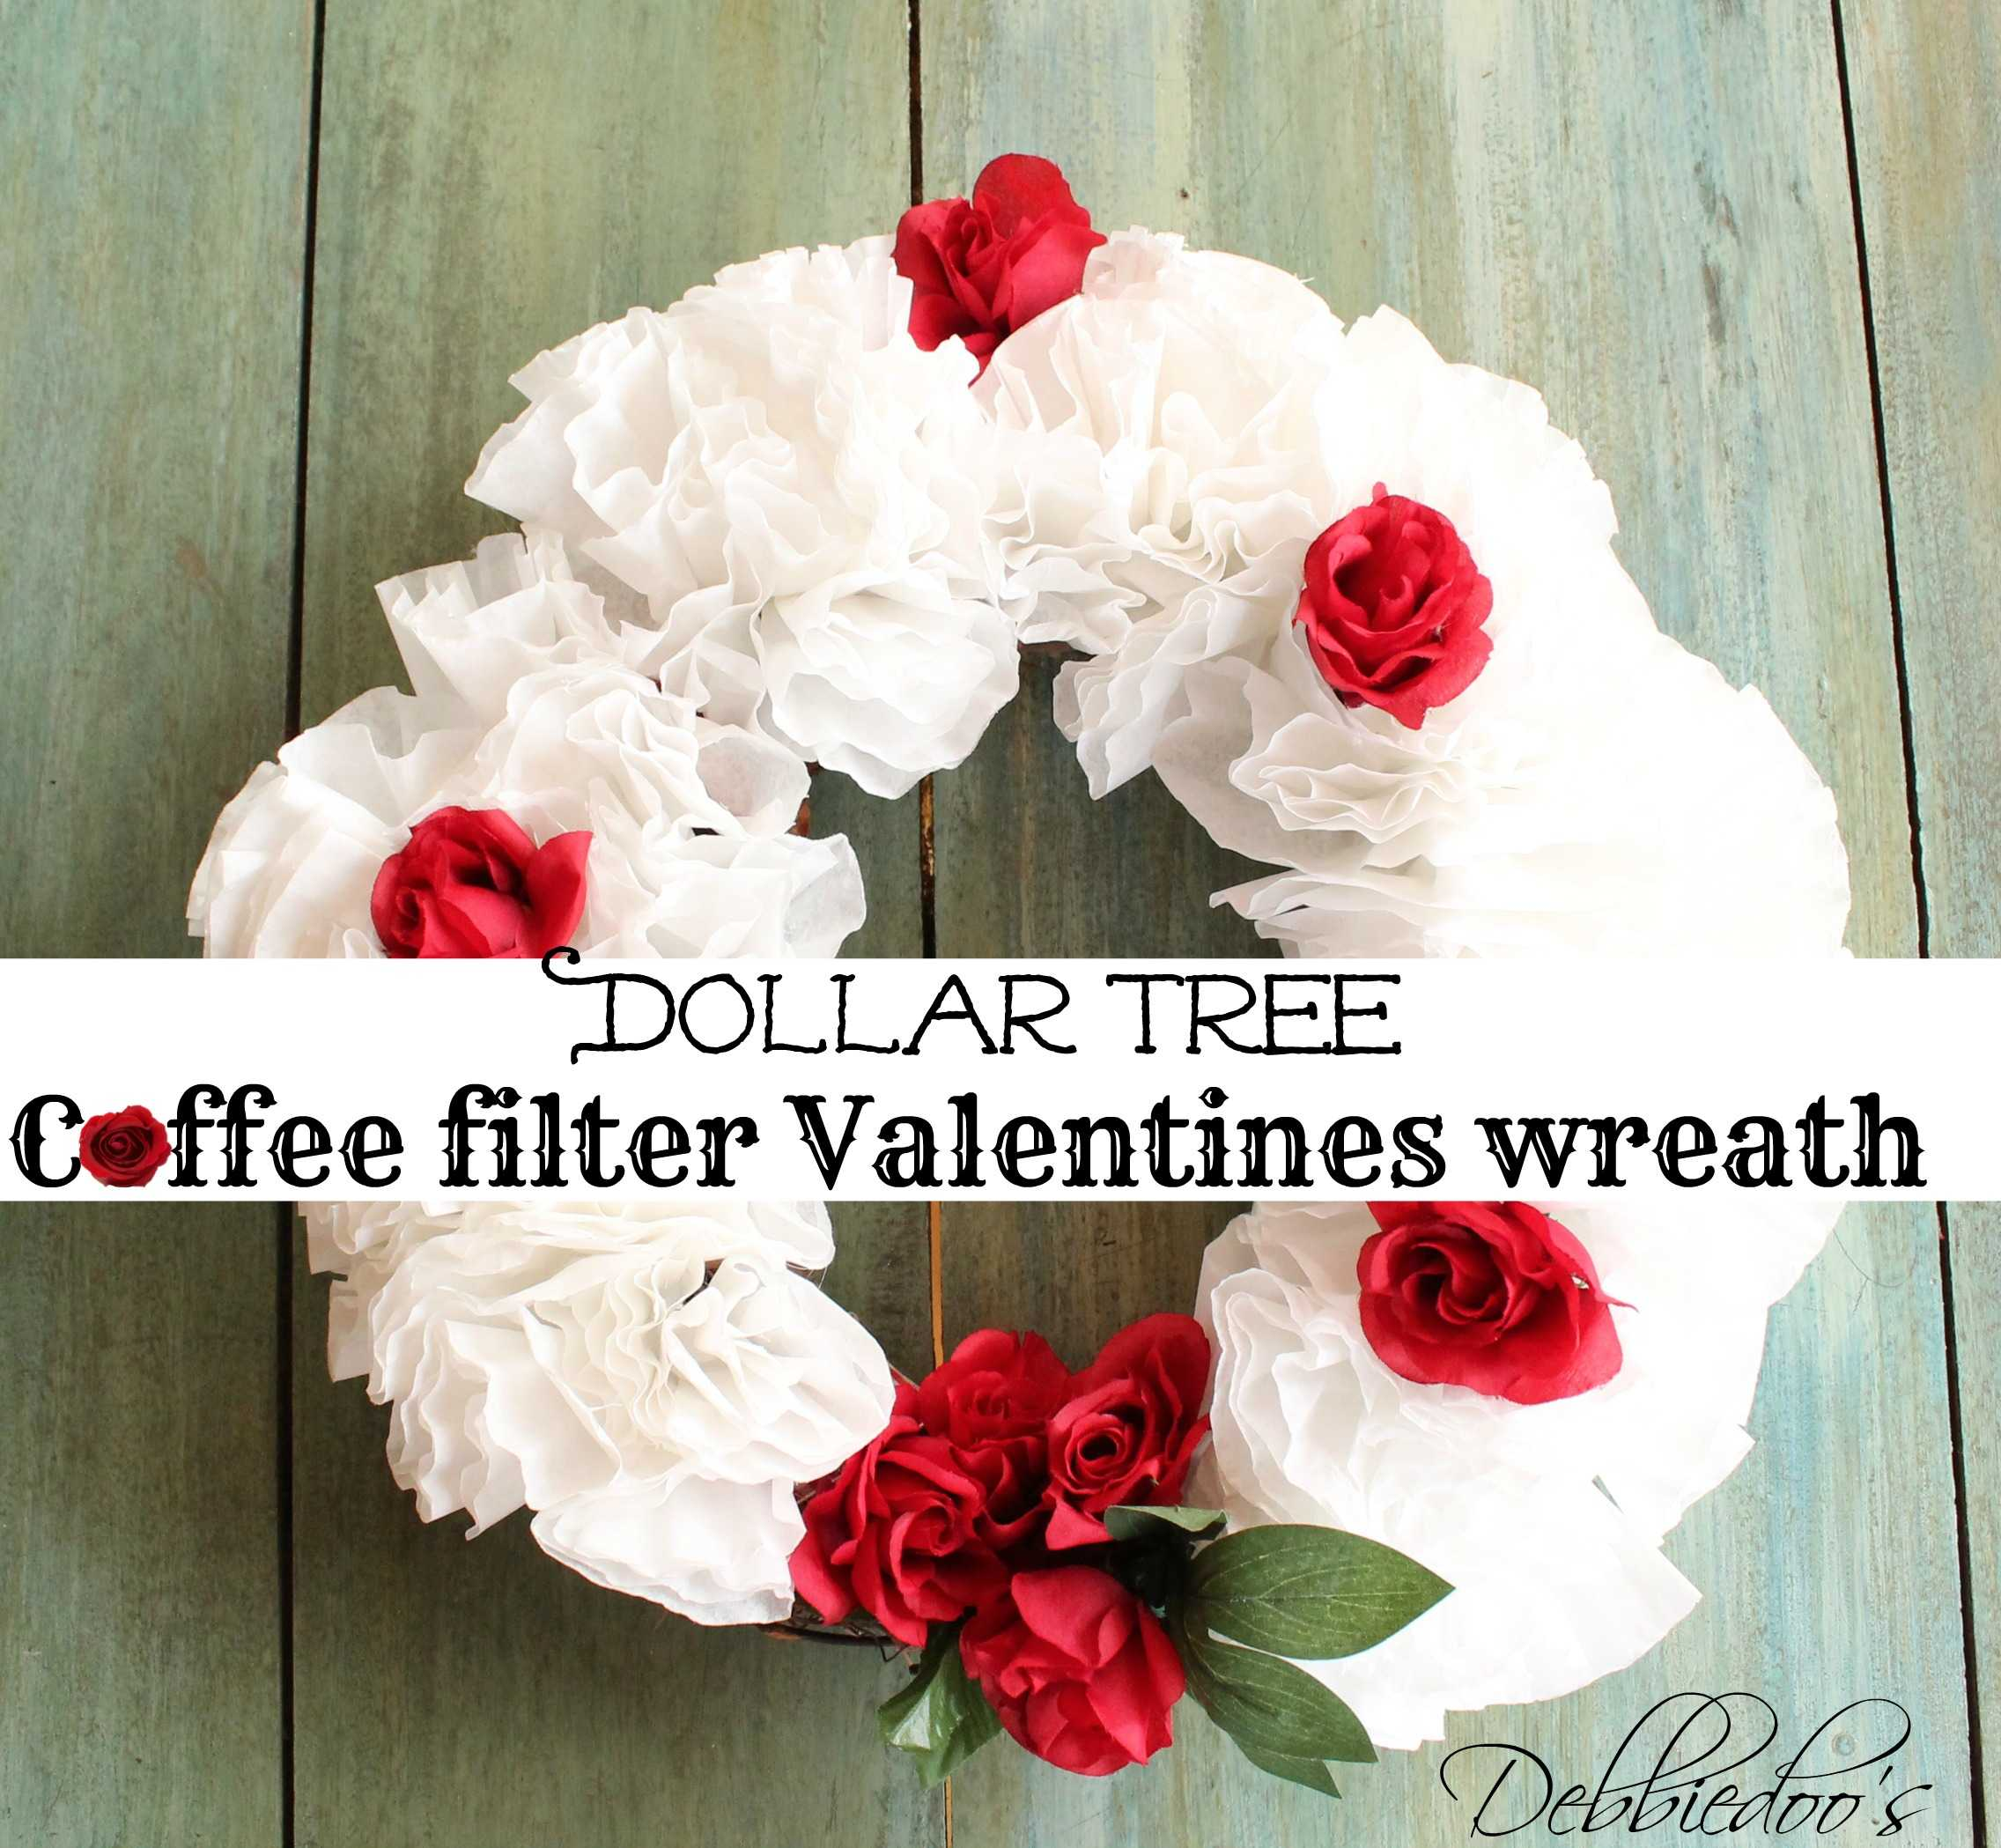 Valentines coffee filter wreath - Debbiedoo's